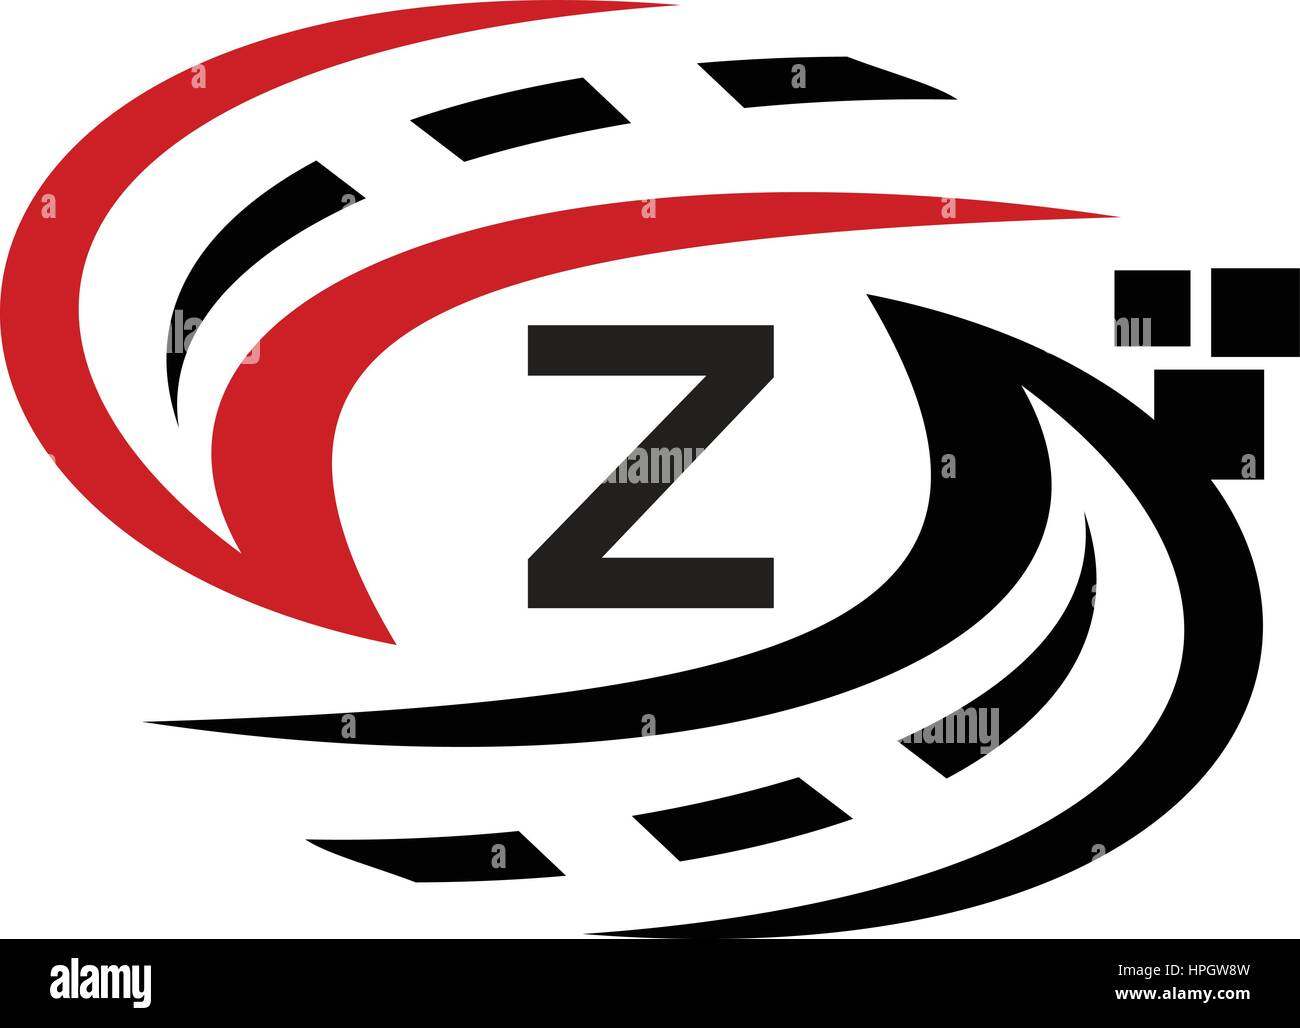 Applications Solutions Synergy Comprehensive Initial Z Stock Vector